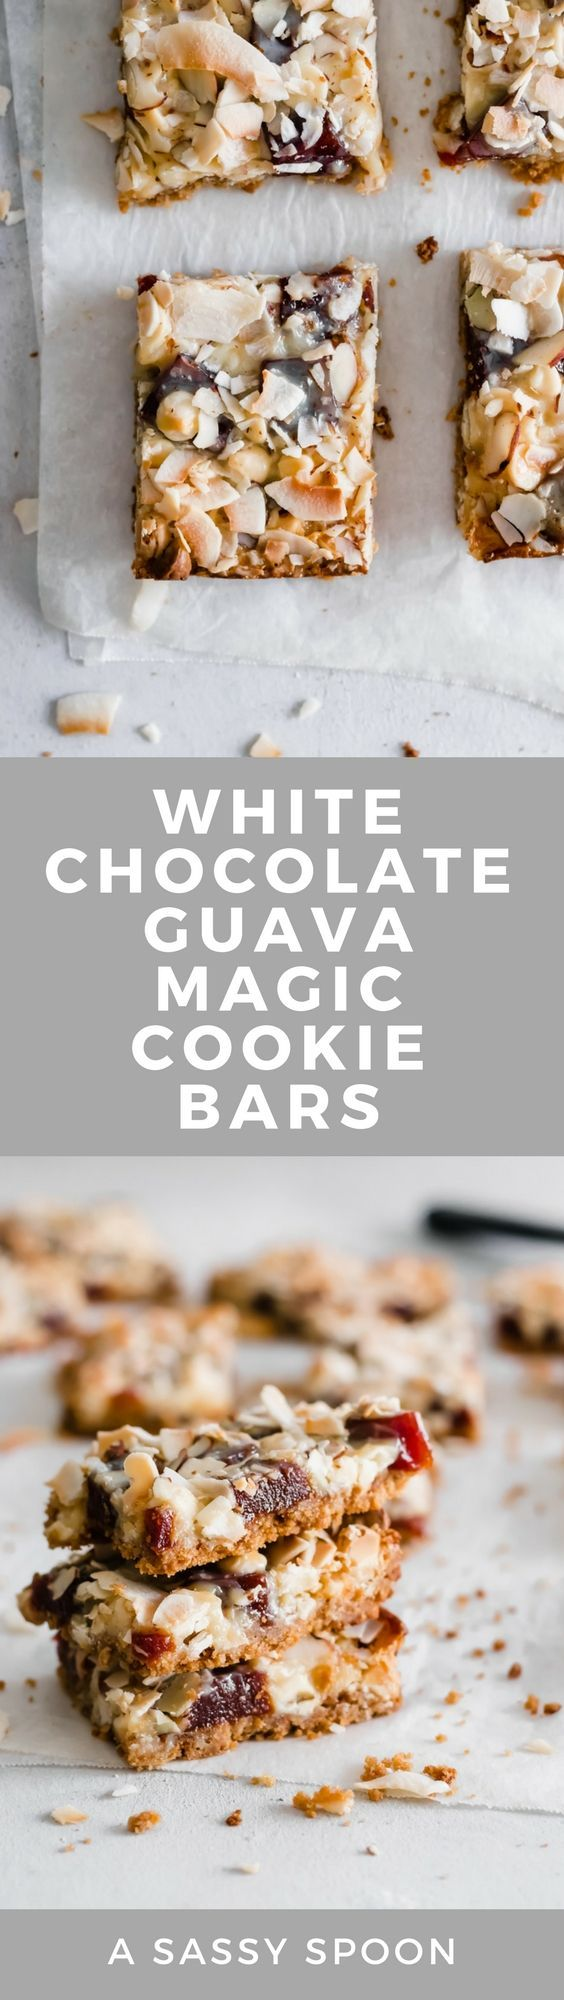 Classic magic cookie bars with a Cuban twist! Maria cookie crust, sweetened condensed milk, cubed guava paste, white chocolate chips, sliced almonds, and toasted coconut flakes.